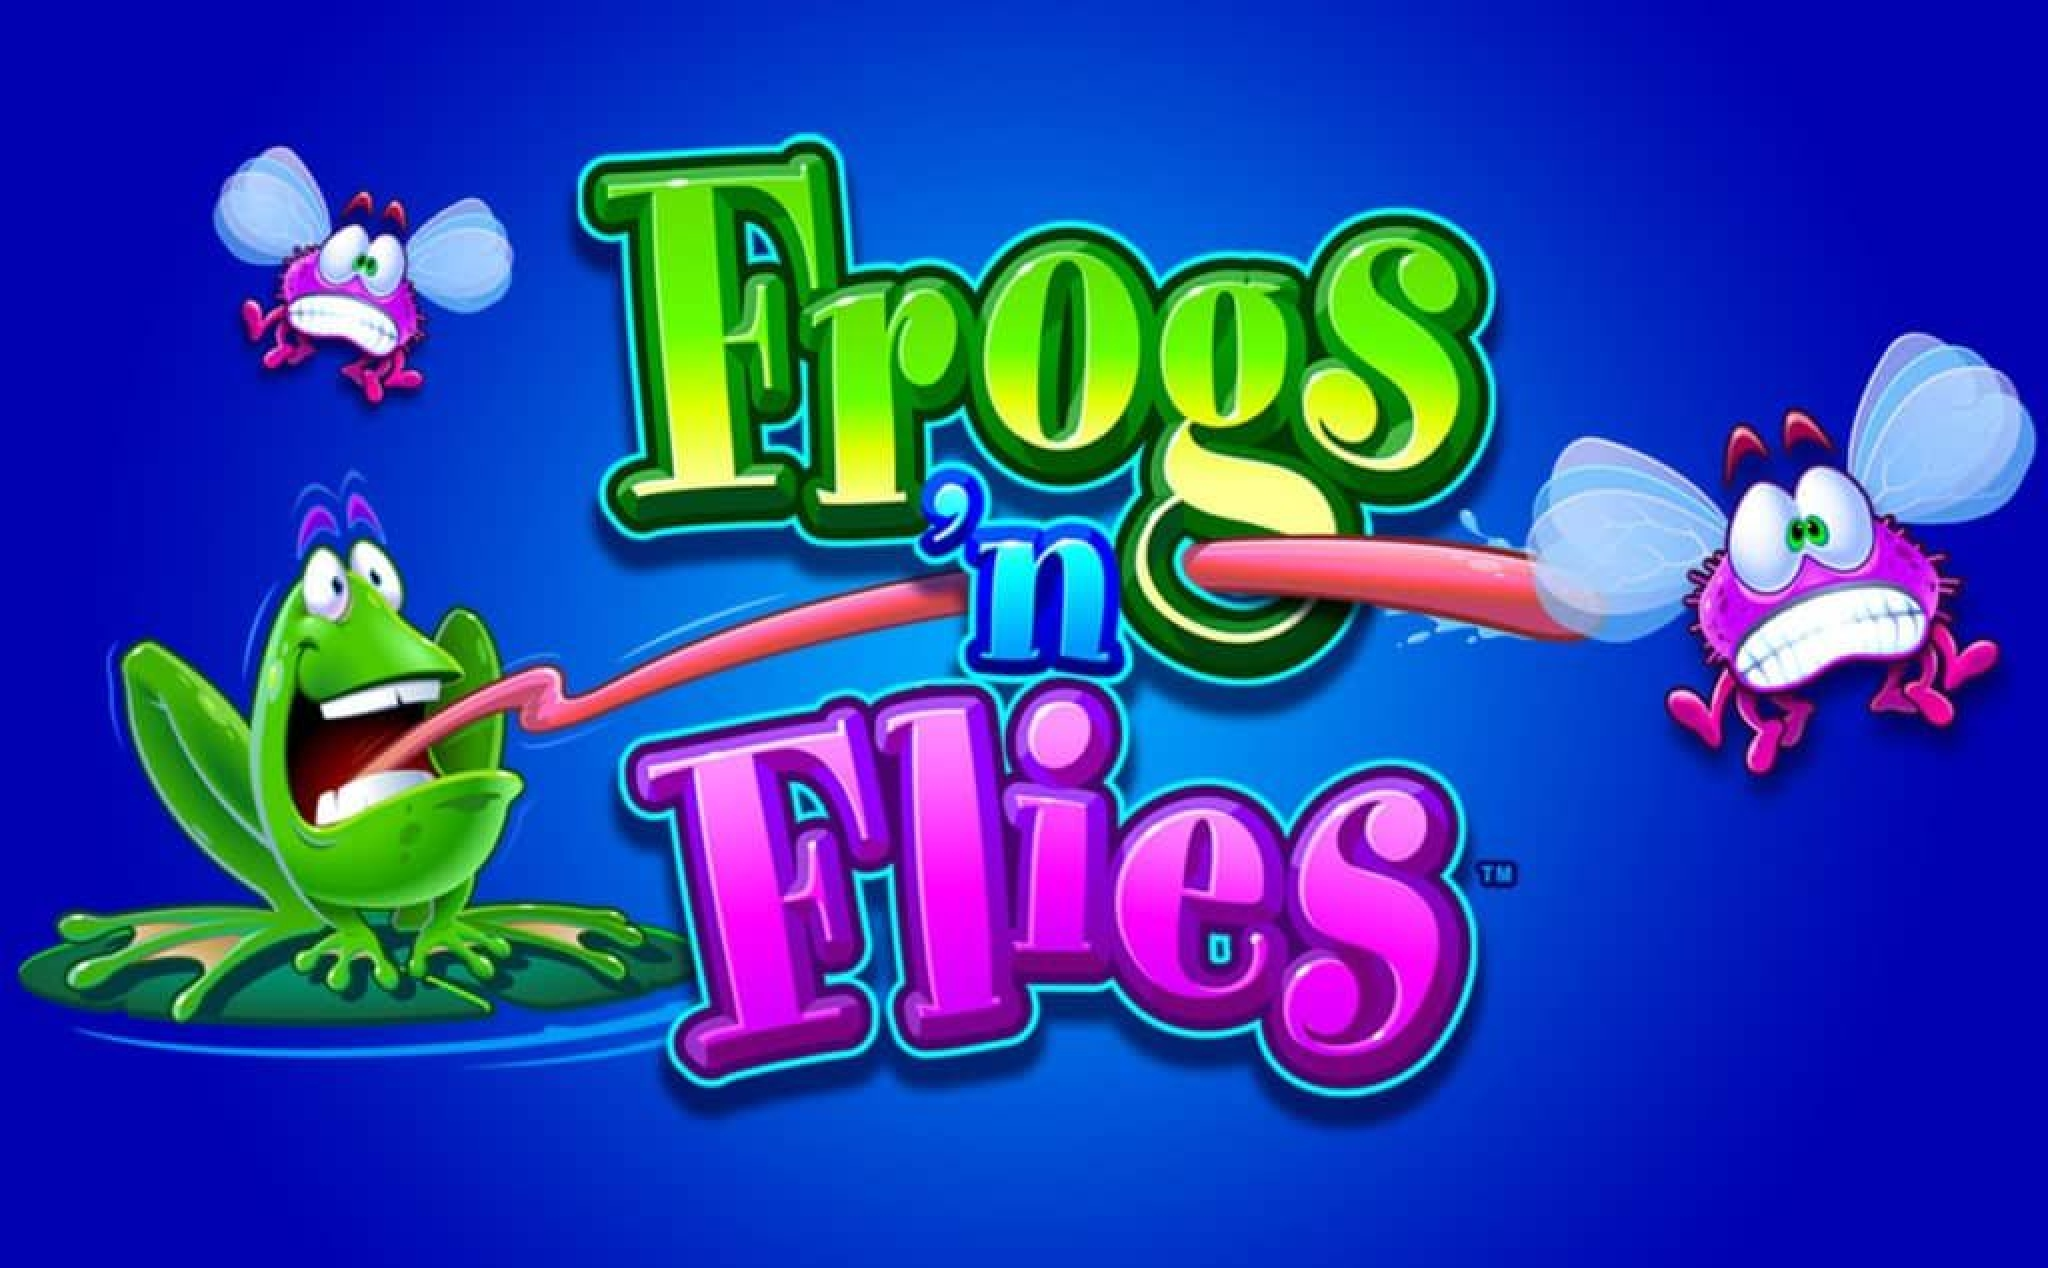 The Frogs 'n Flies Temple Cash Online Slot Demo Game by Lightning Box